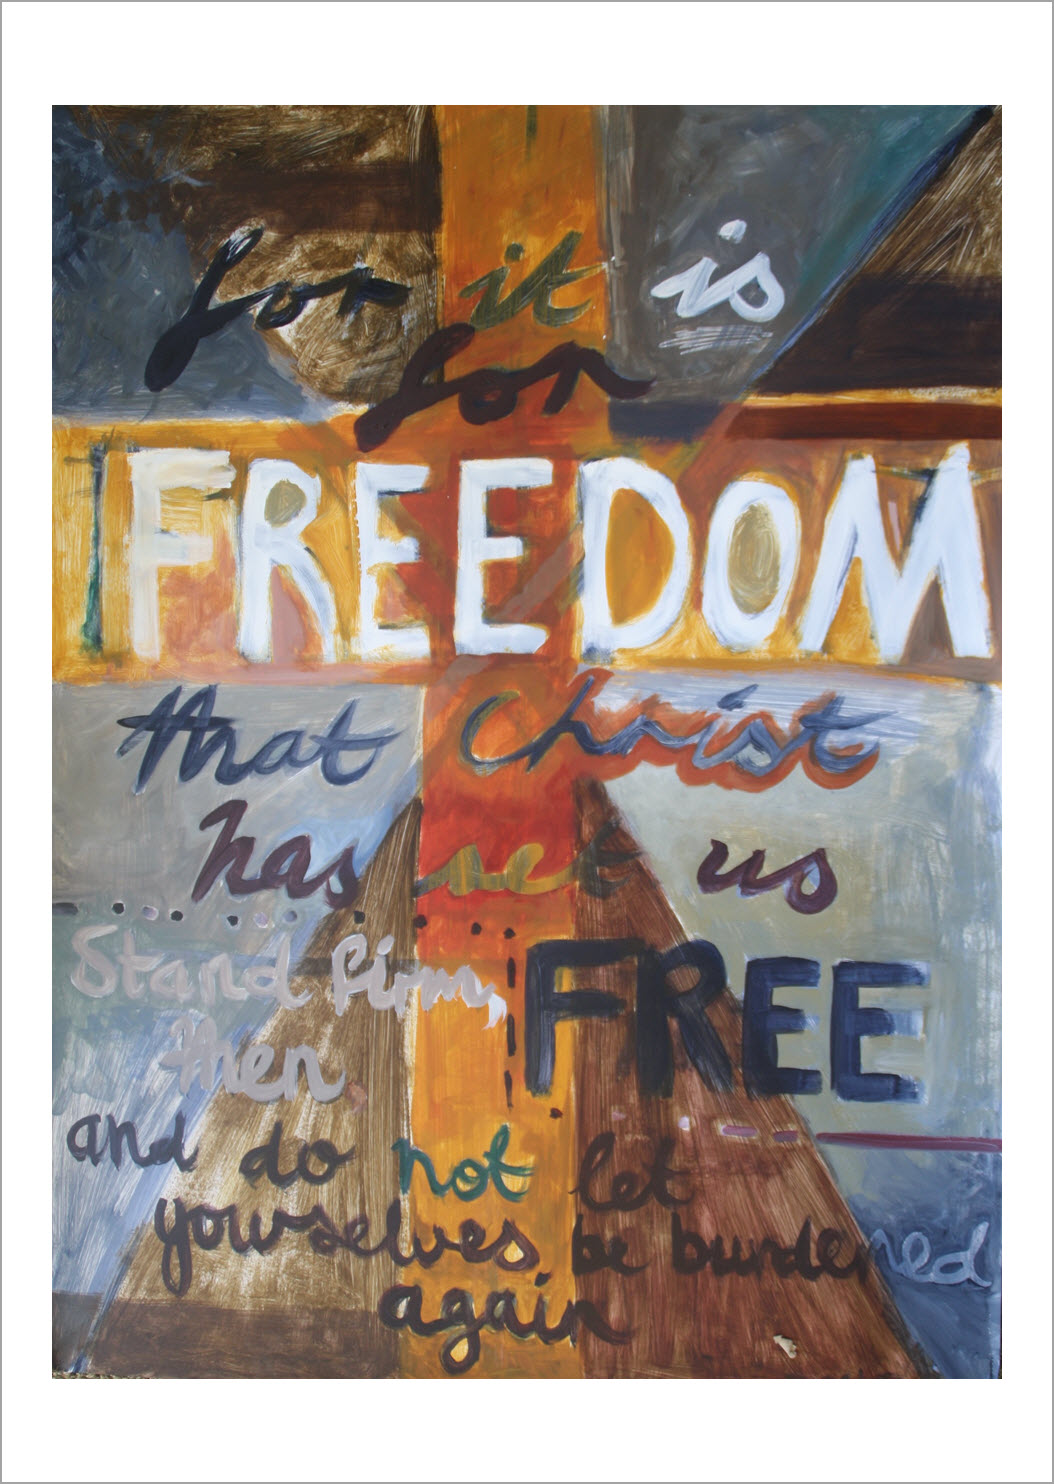 34.Painted Verses:Galatians 5:1New International Version (NIV)  It is for freedom that Christ has set us free. Stand firm, then, and do not let yourselves be burdened again by a yoke of slavery.